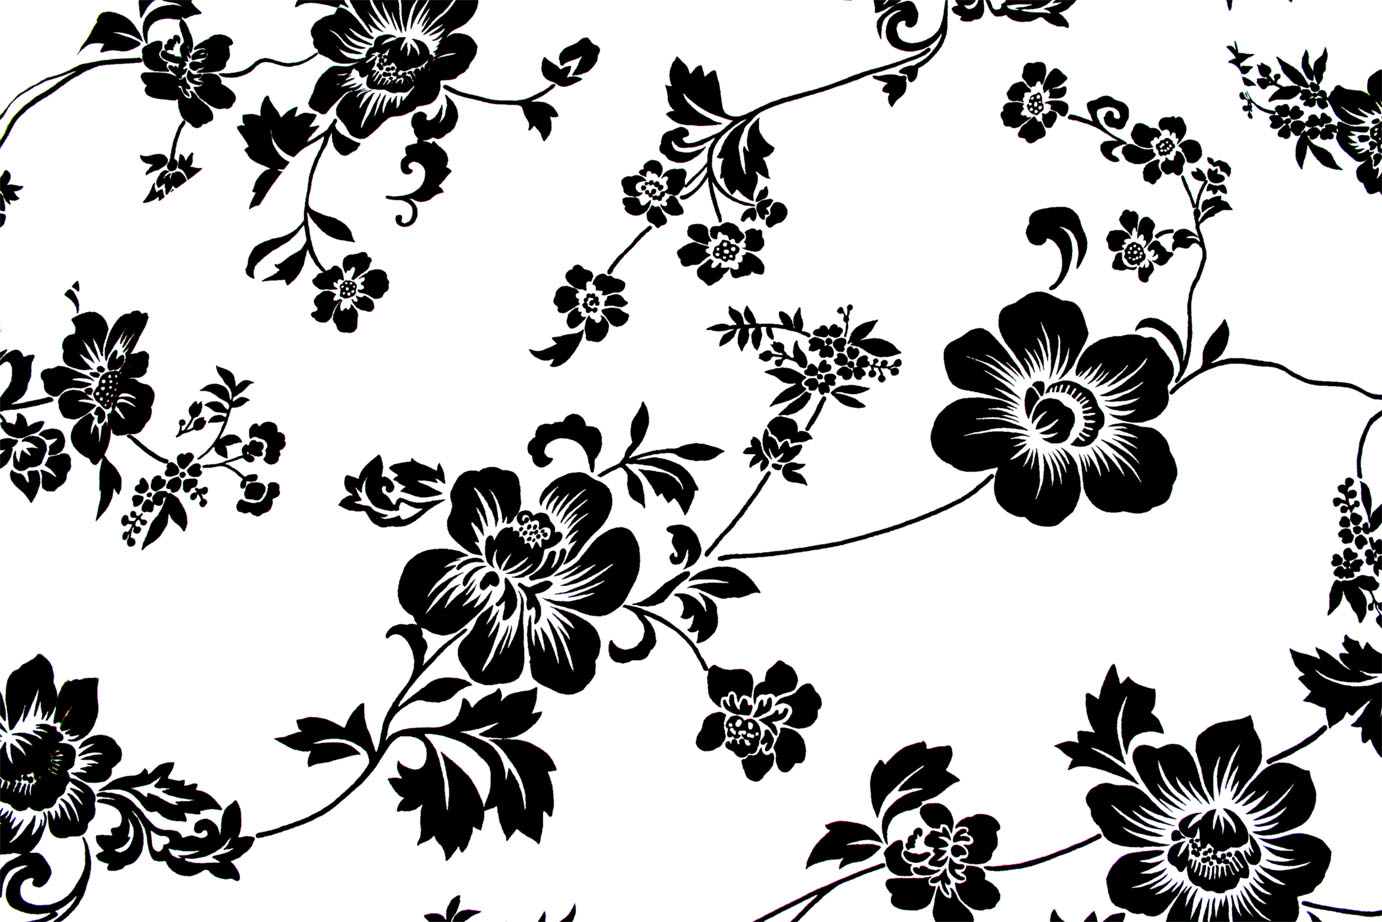 40 Seamless Free Floral Textures For Designers